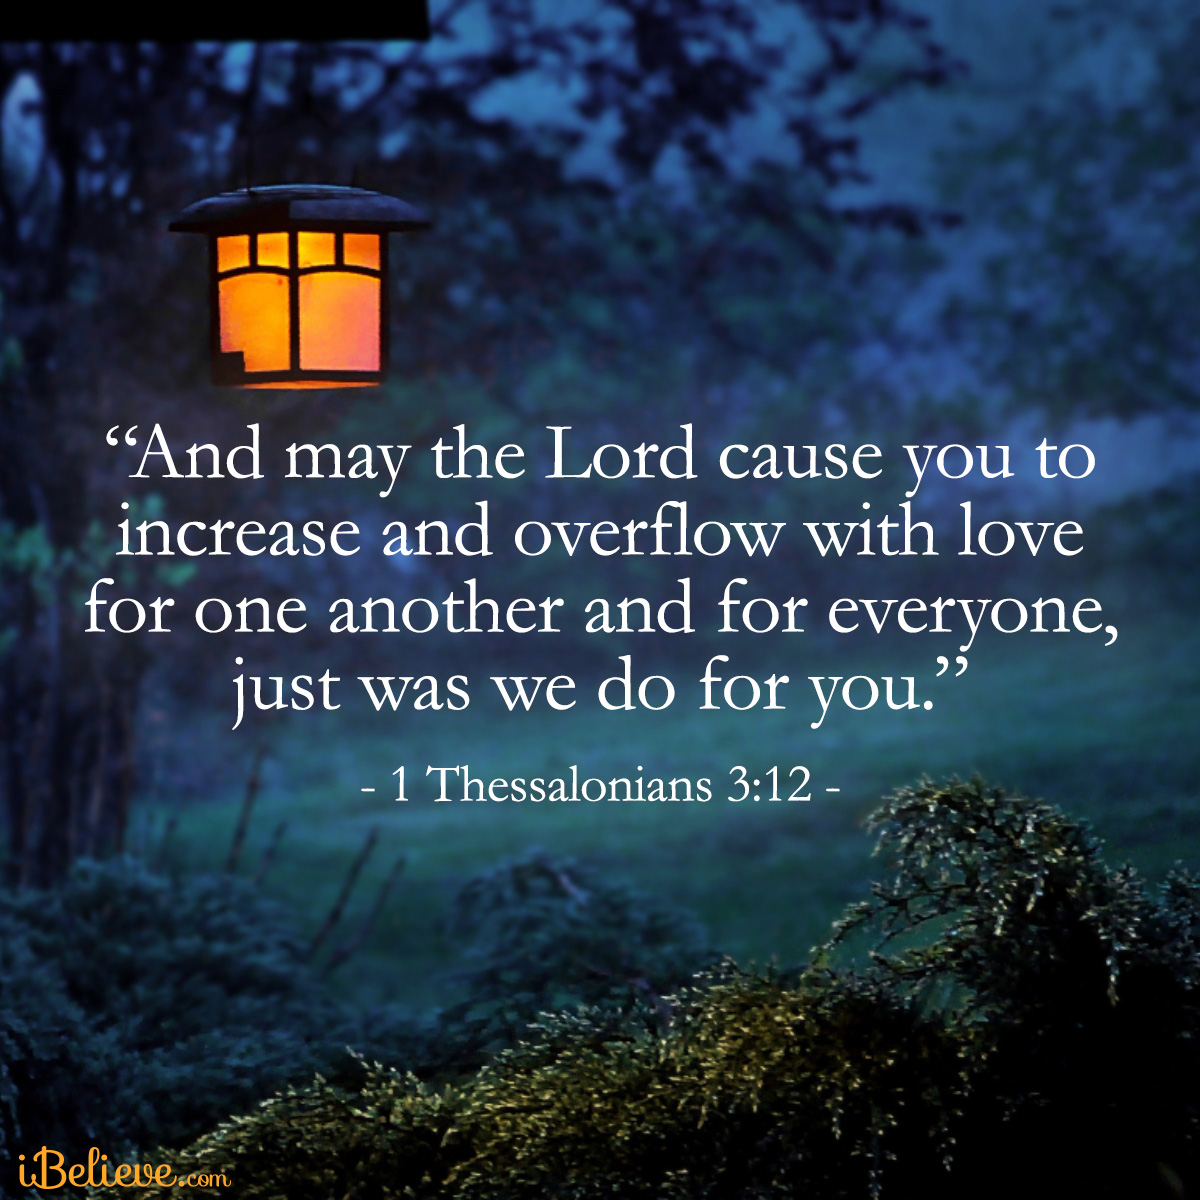 1 Thessalonians 3:12 square image